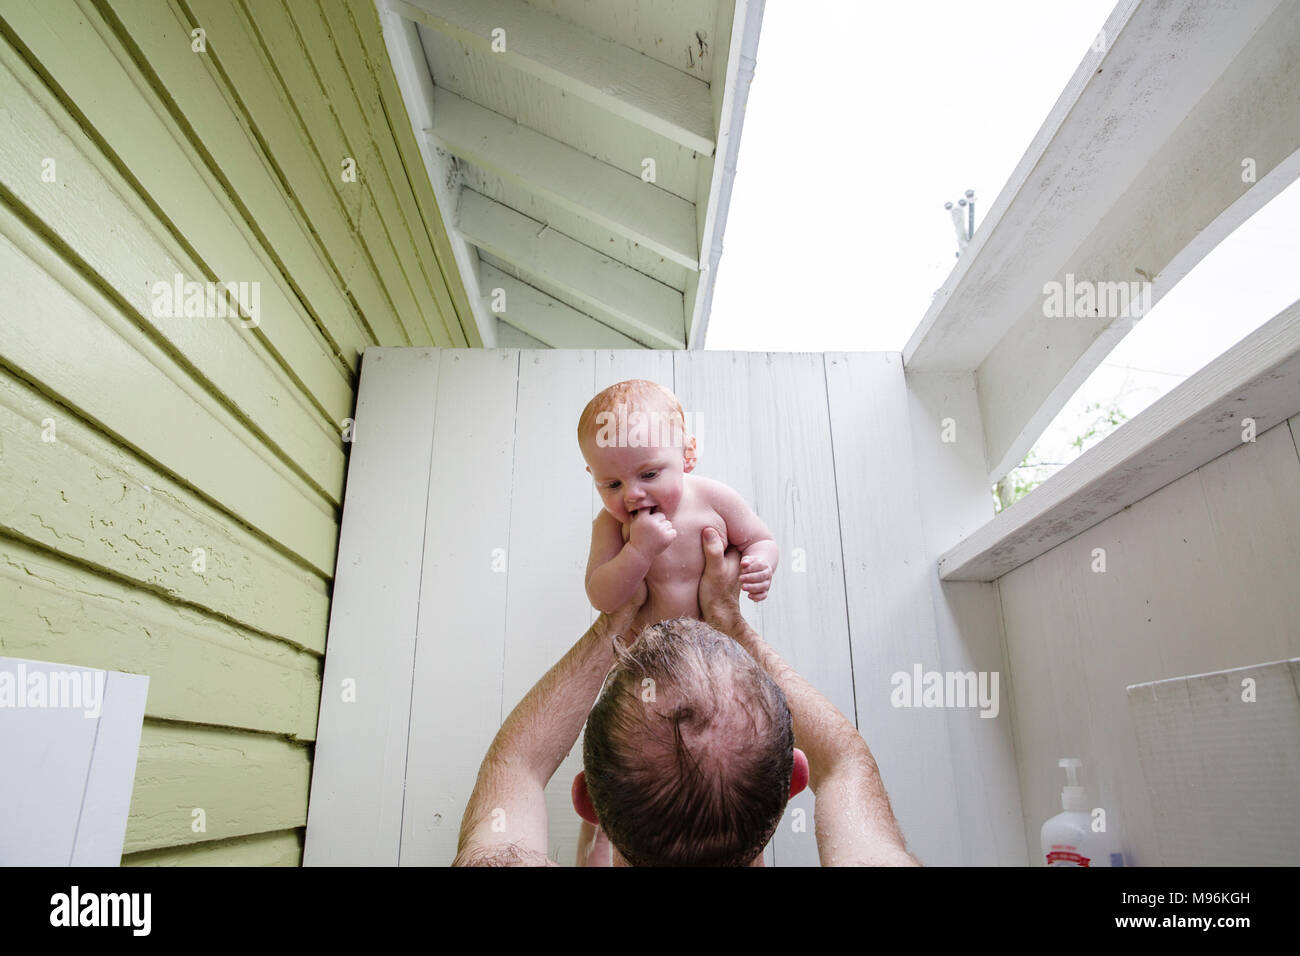 Man holding up baby Photo Stock